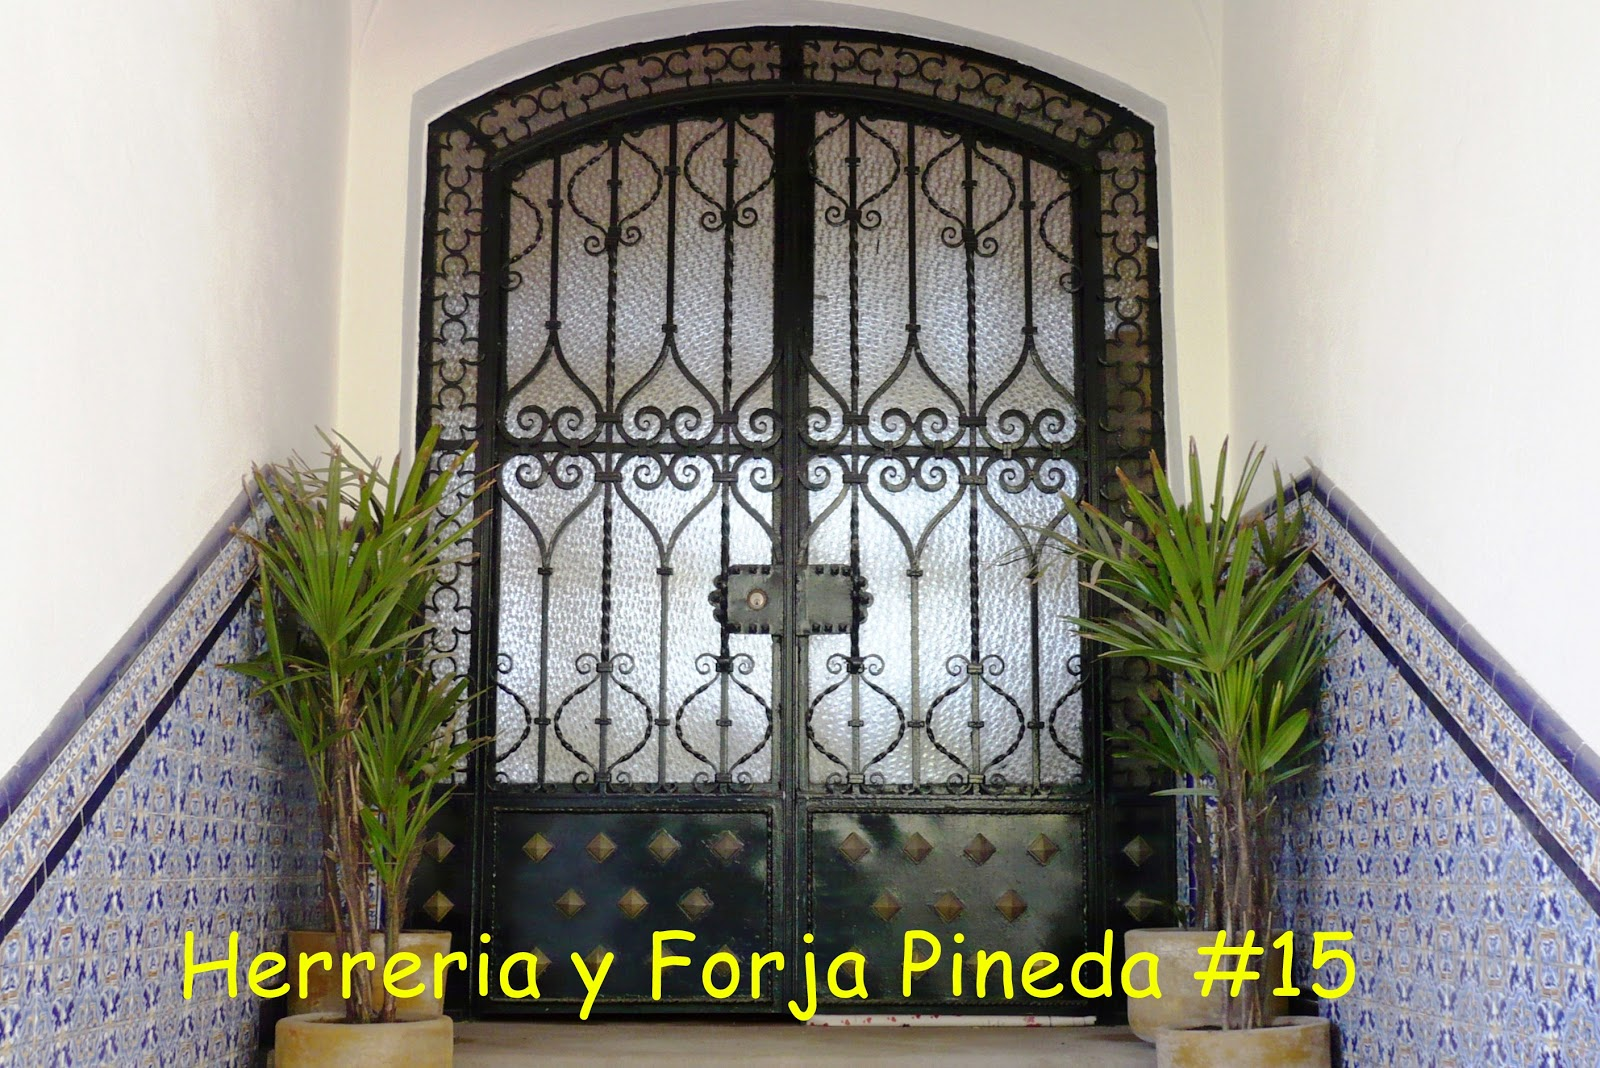 10 p. m. by Herreria Forja Pineda No comments